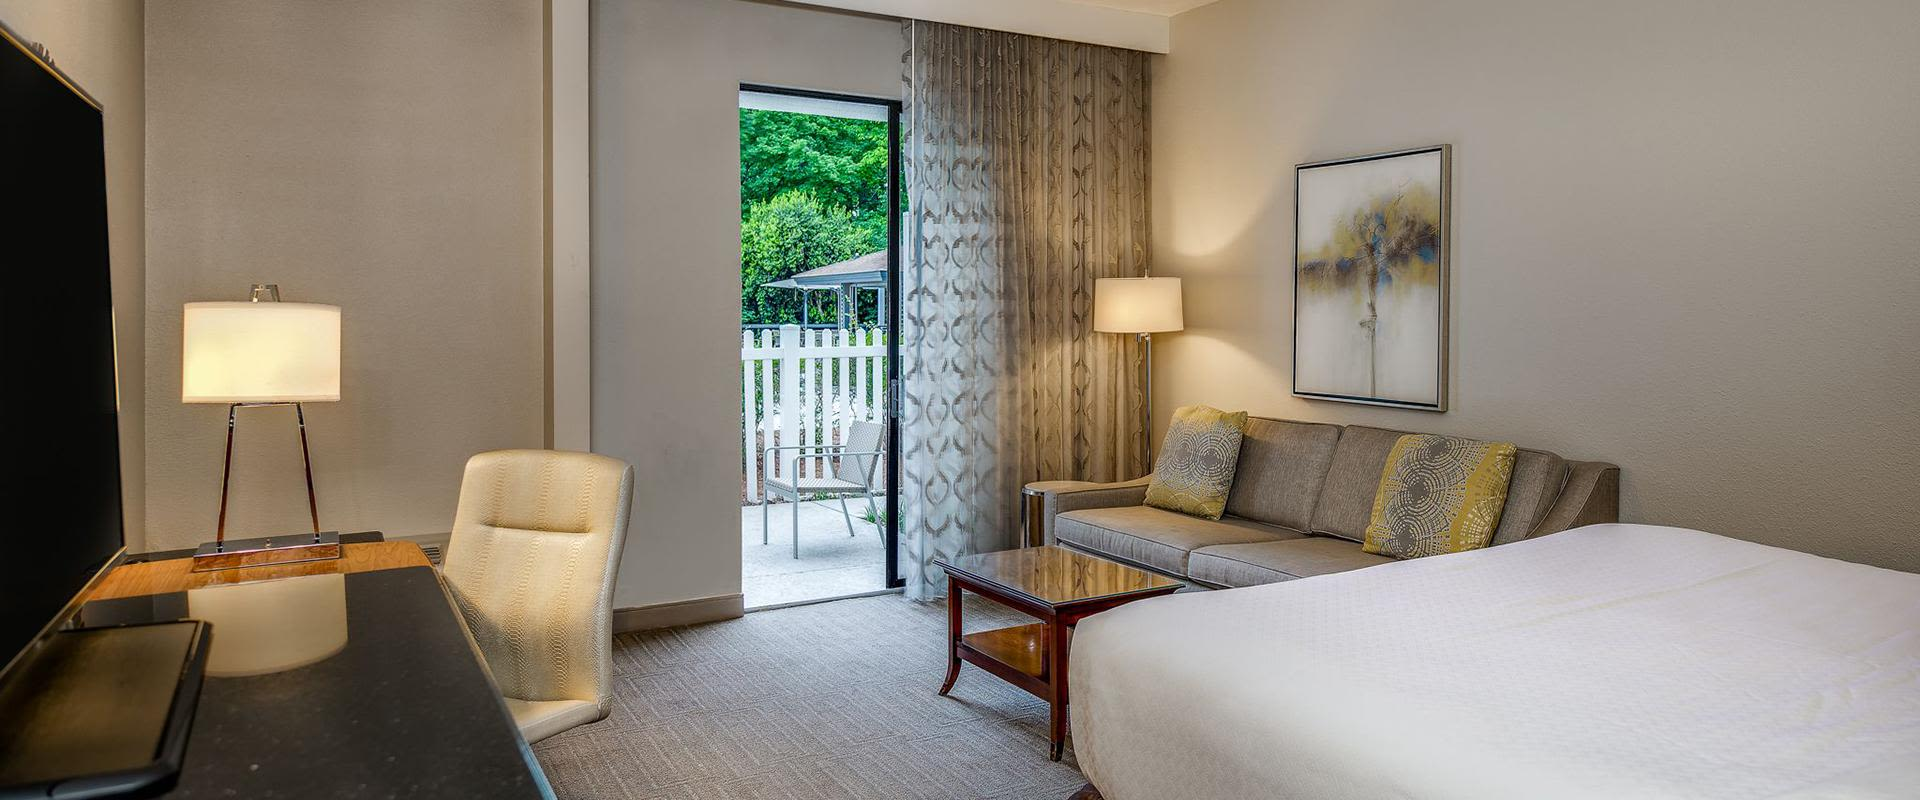 Charlotte Hotel Guest Room Sitting Area